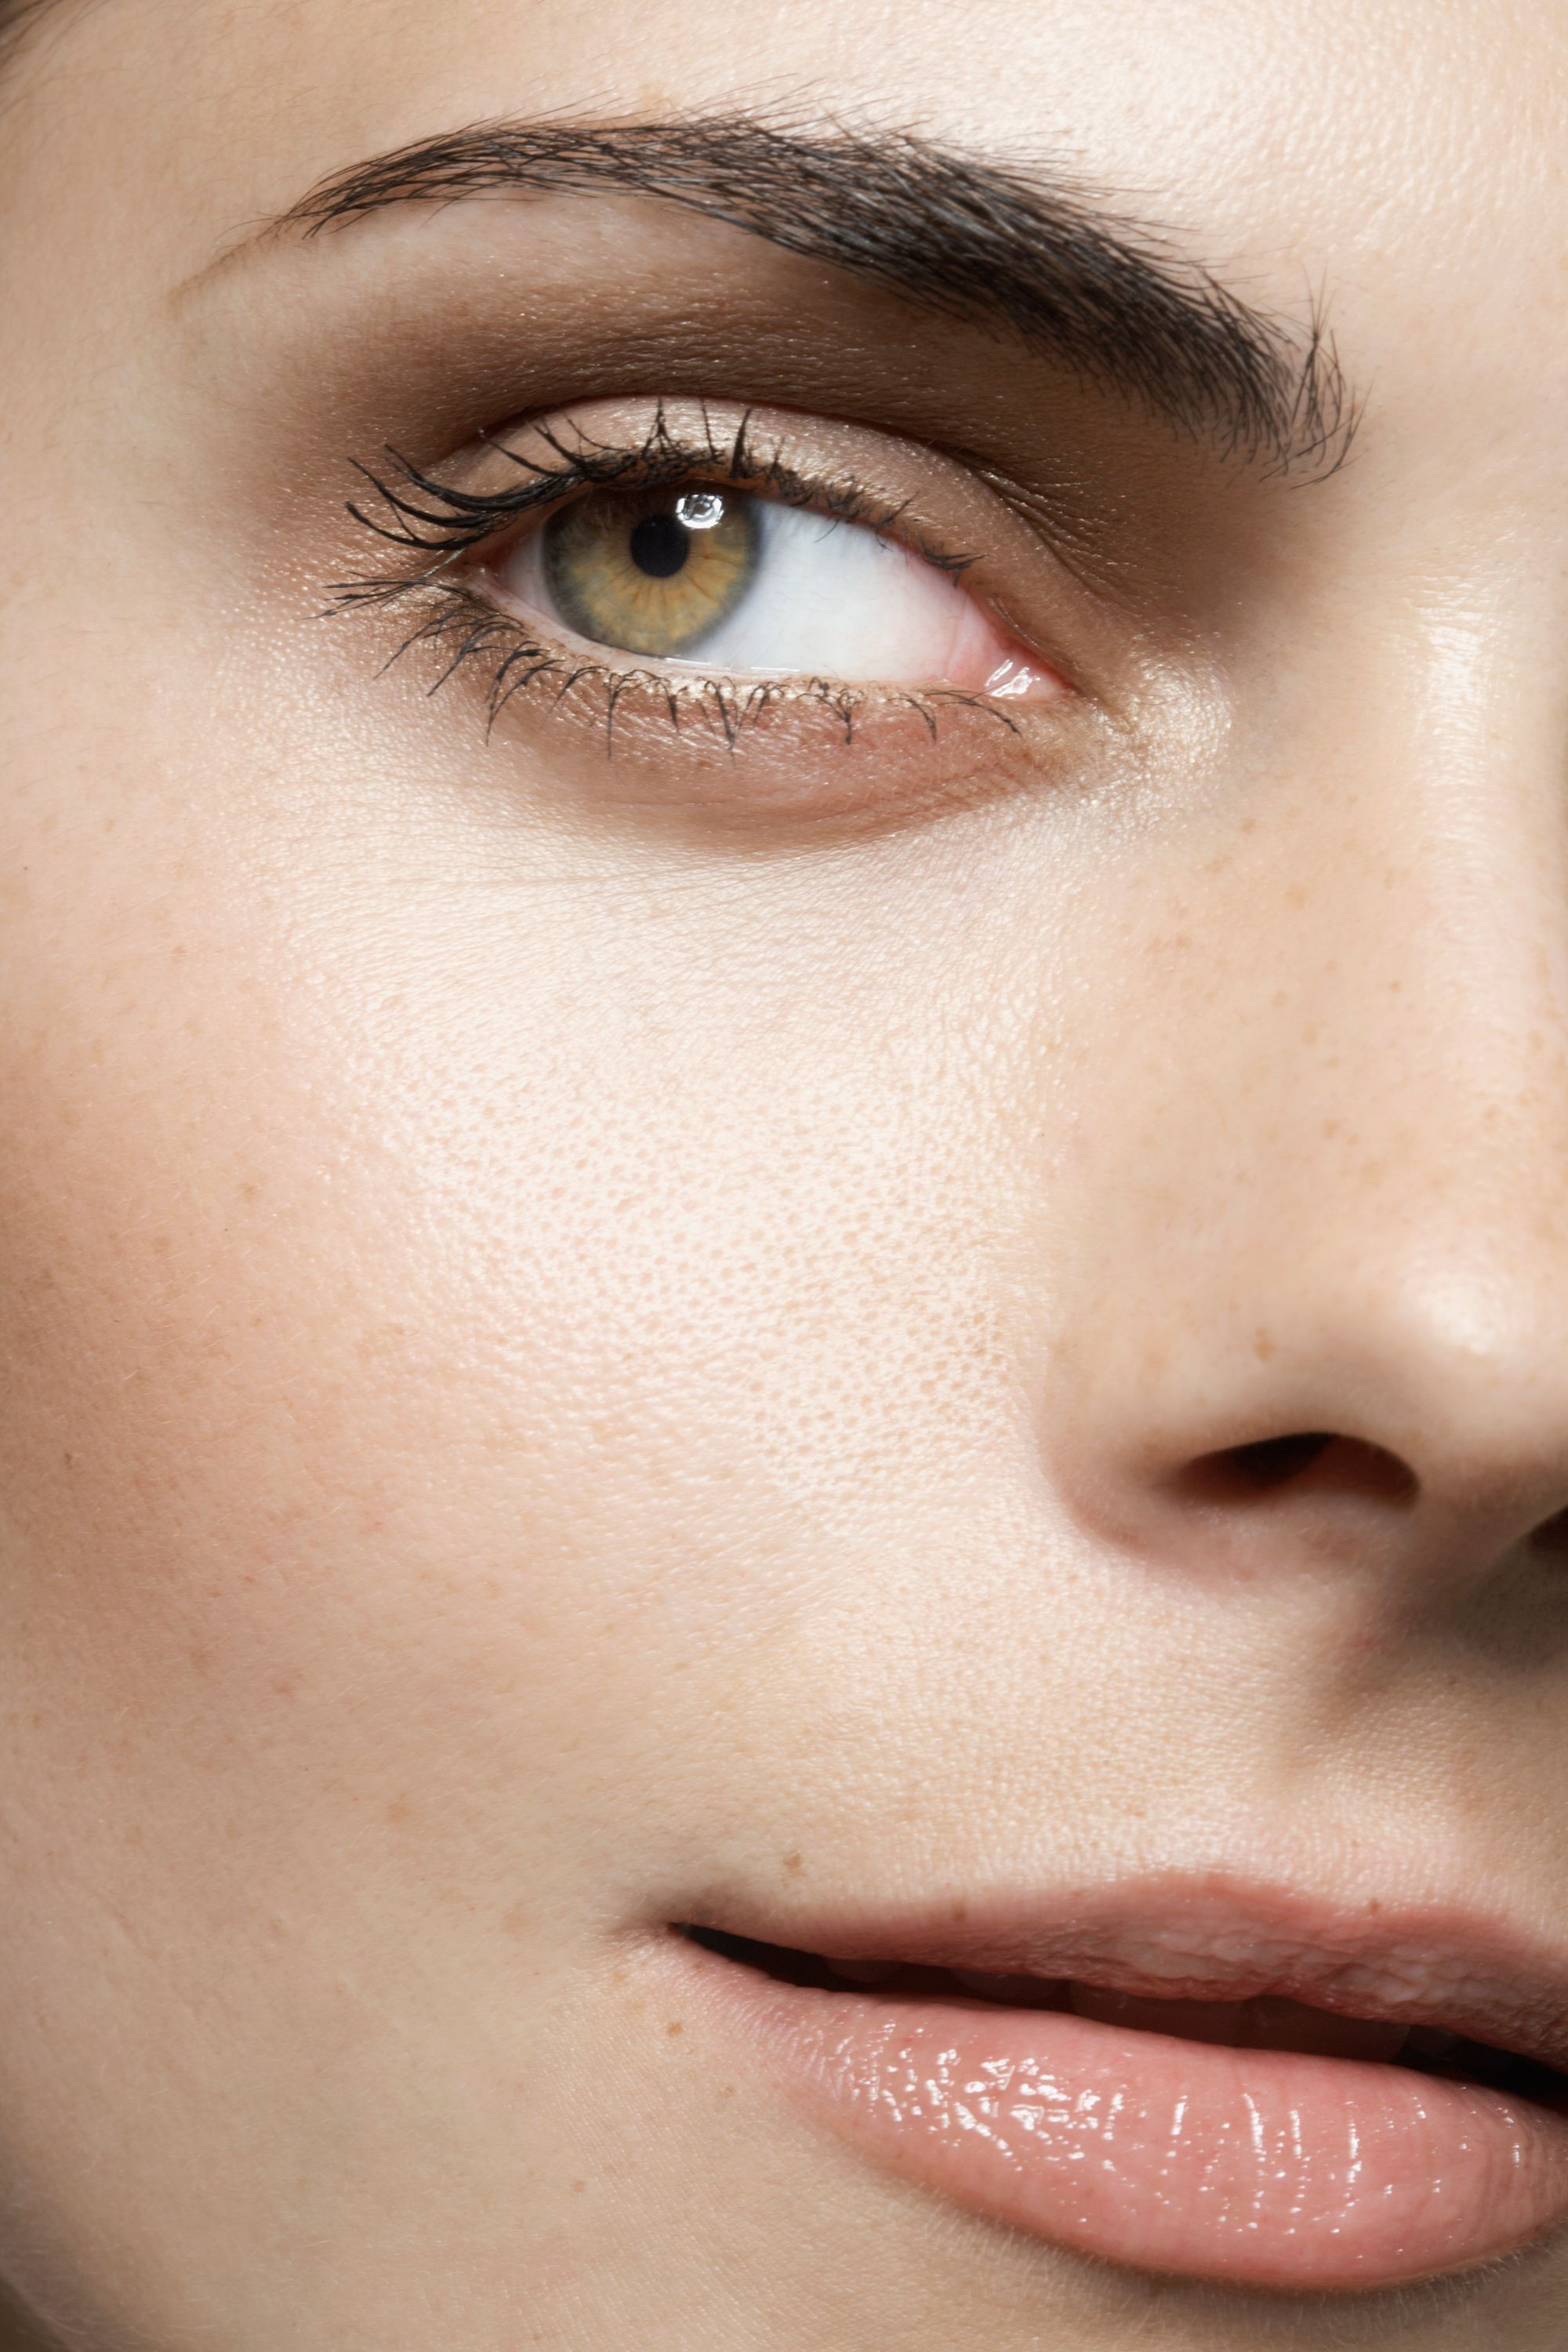 7 products that will actually shrink your pores